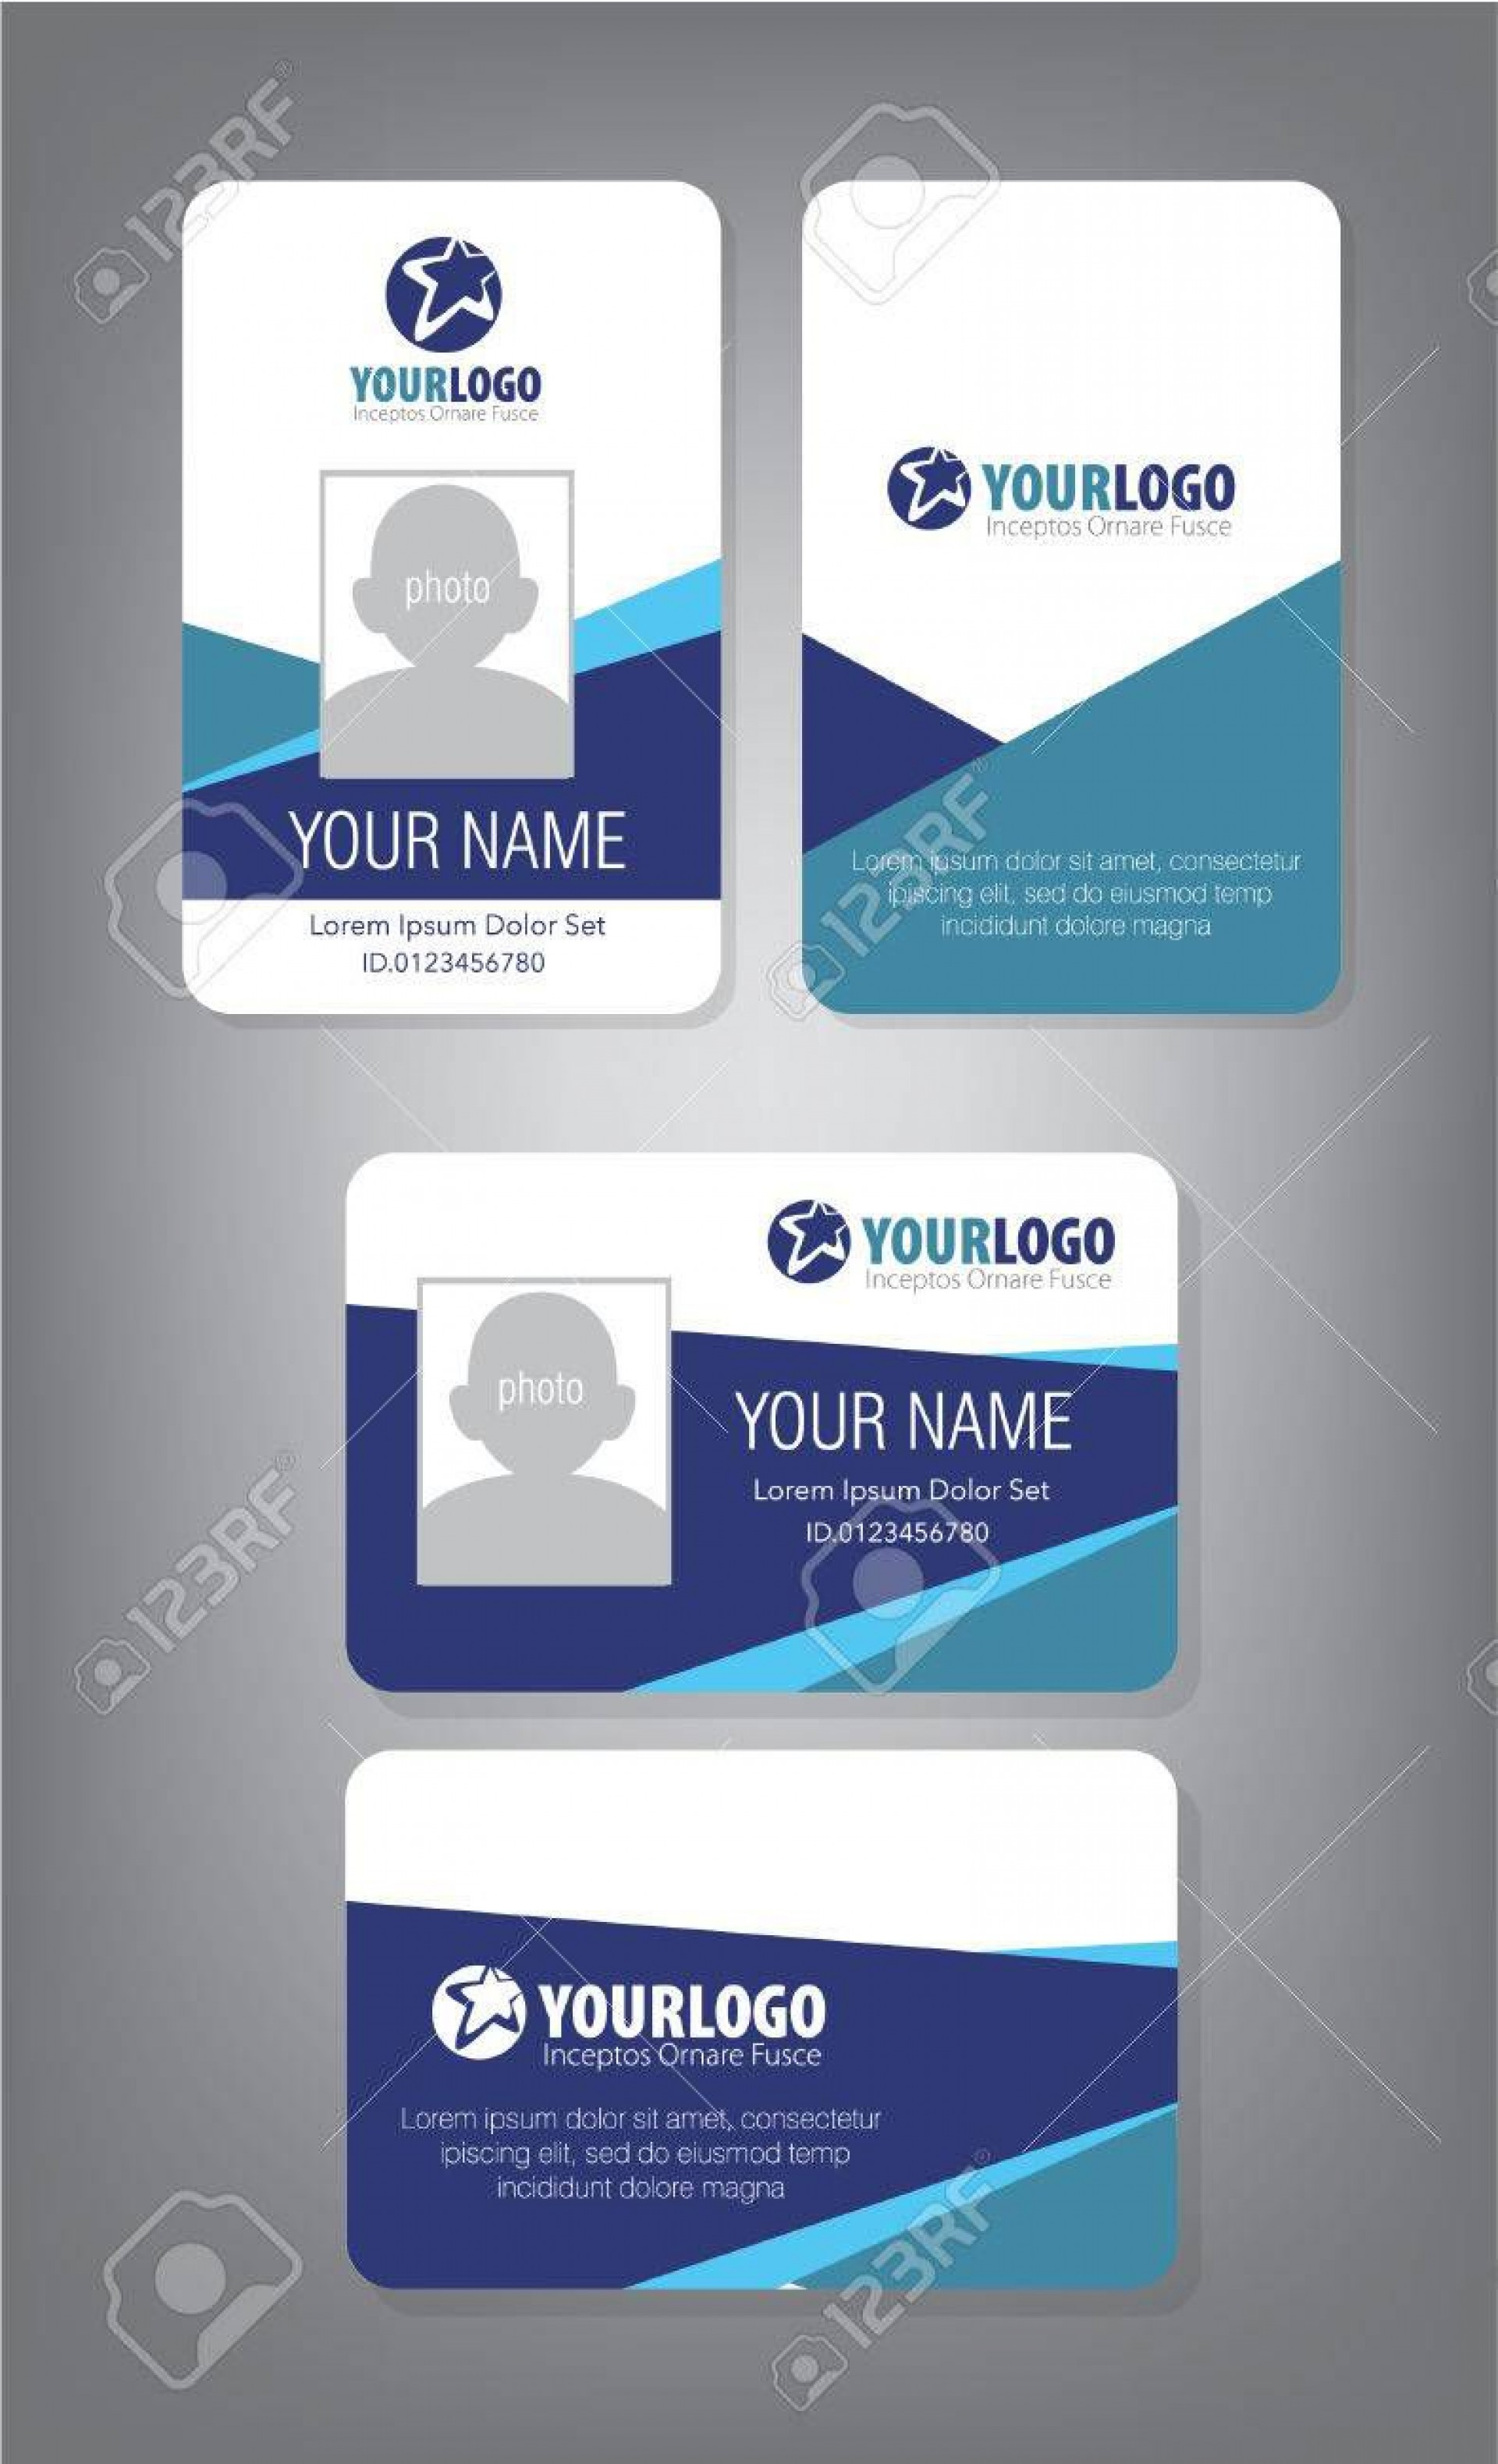 000 Magnificent Id Card Template Free High Resolution  Download Pdf Design1920